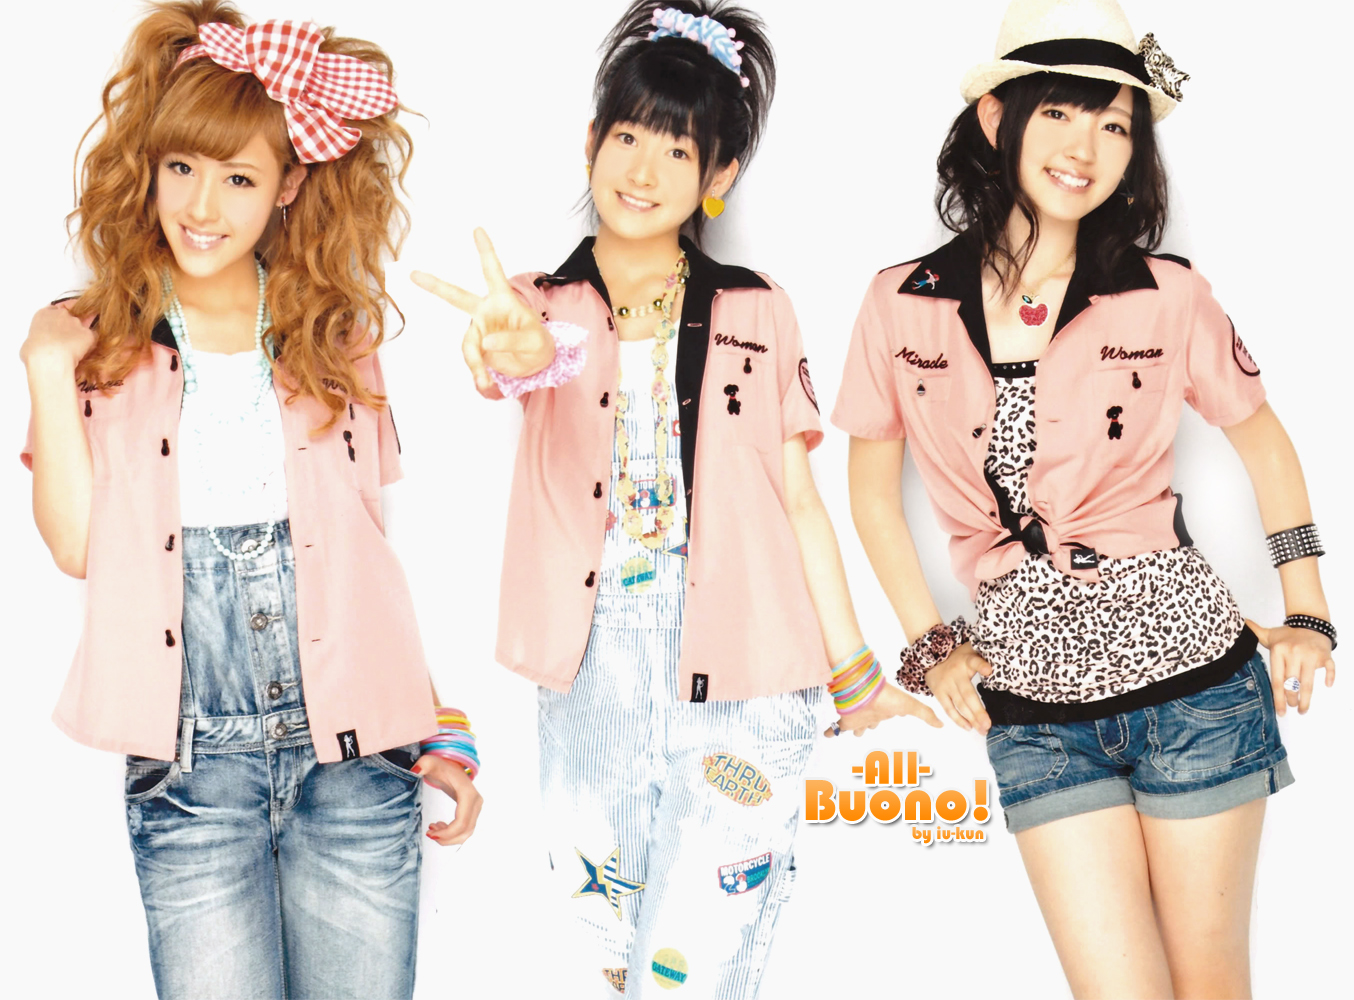 Crunchyroll buono group info buono is backyou want to remember their past singles memoriesor youre a new buono fanis is we are buono opv that would make you feel like buono thecheapjerseys Images